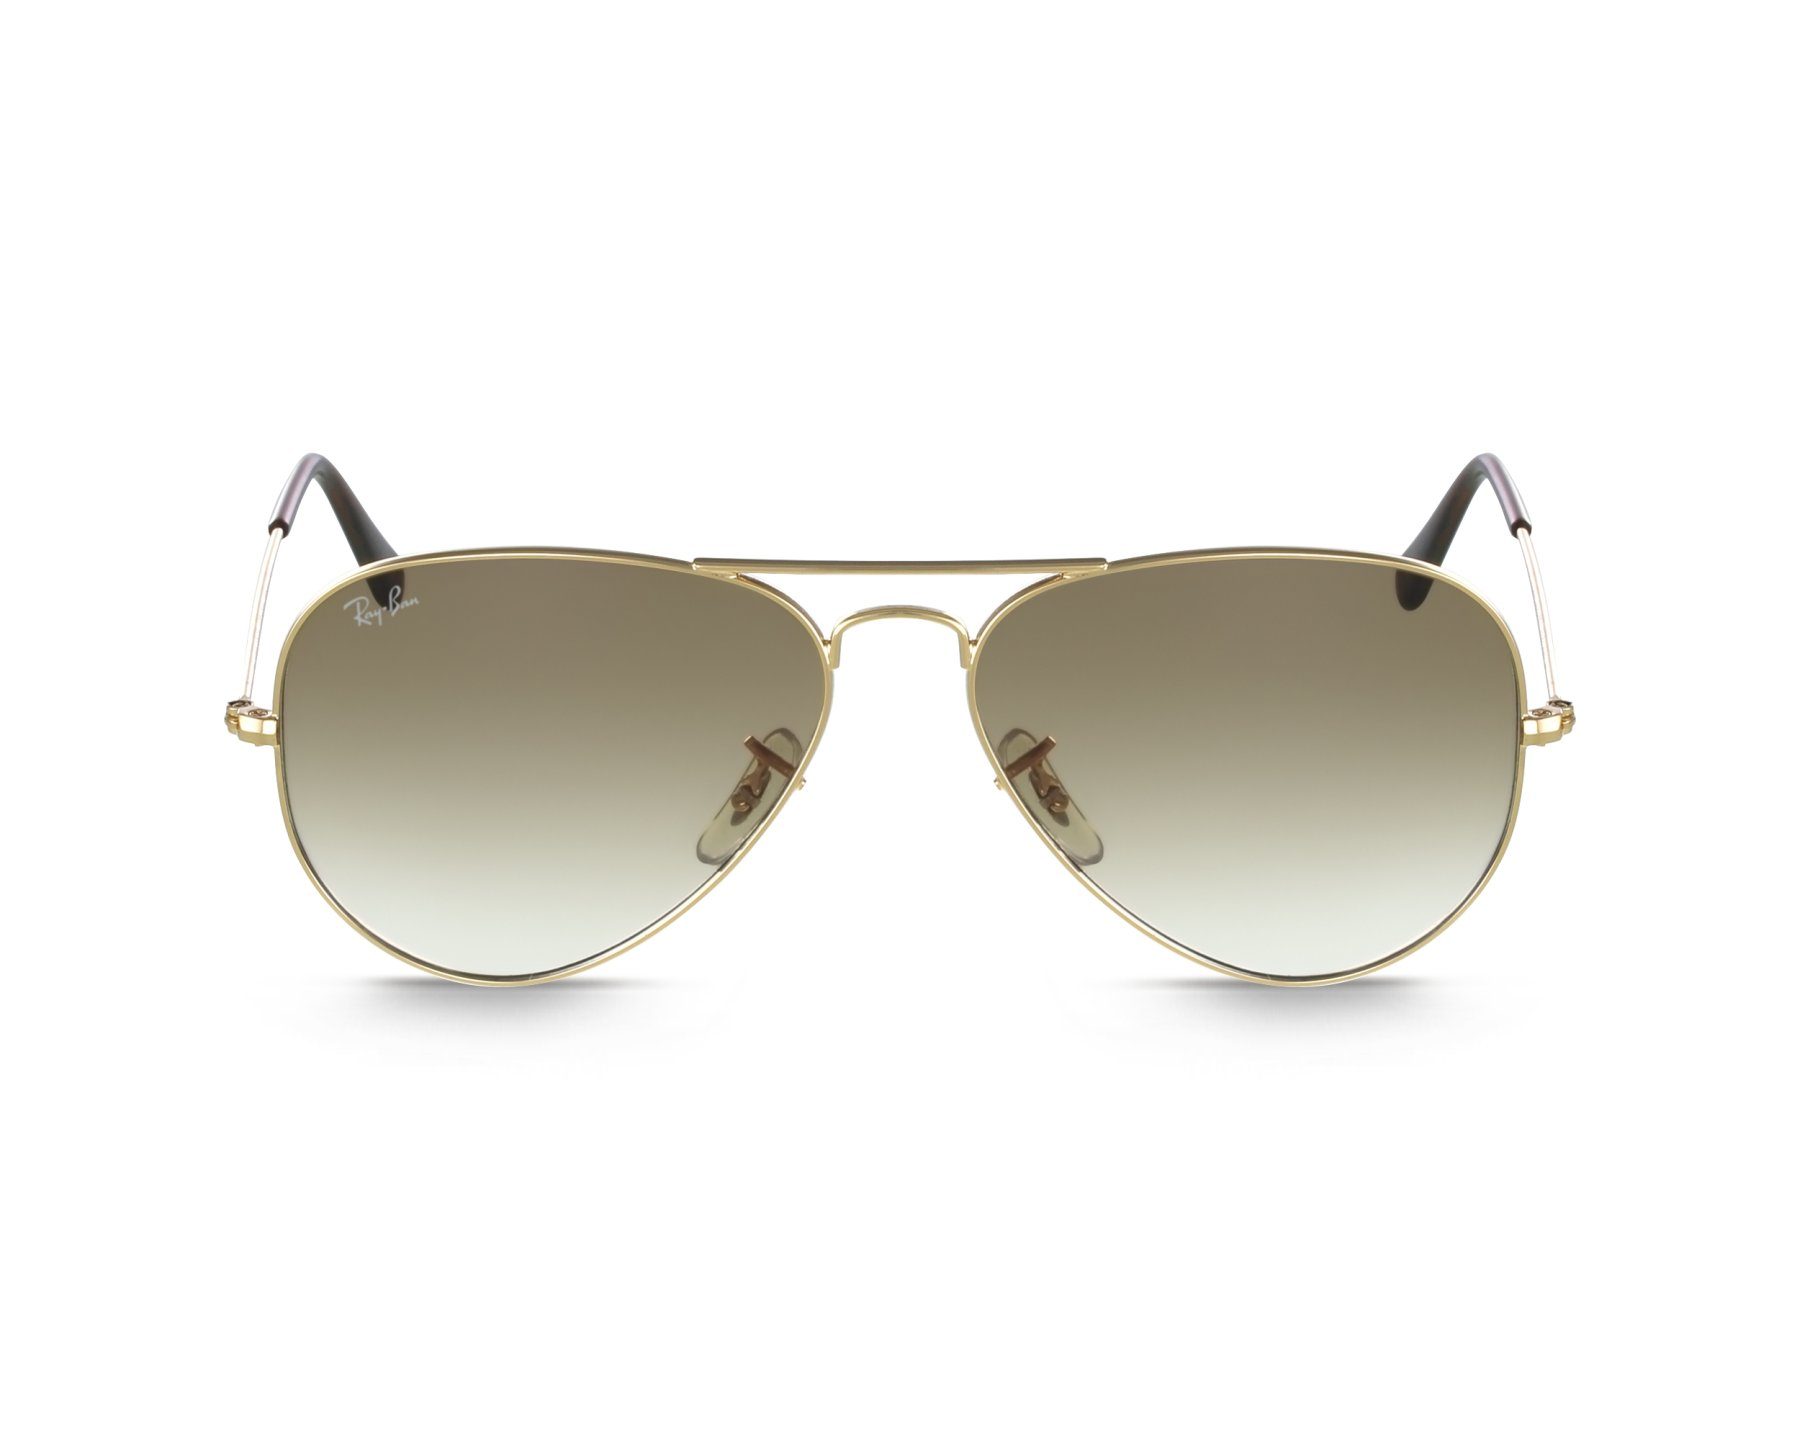 d5c126c7abc75 Sunglasses Ray-Ban RB-3025 001 51 55-14 Gold profile view